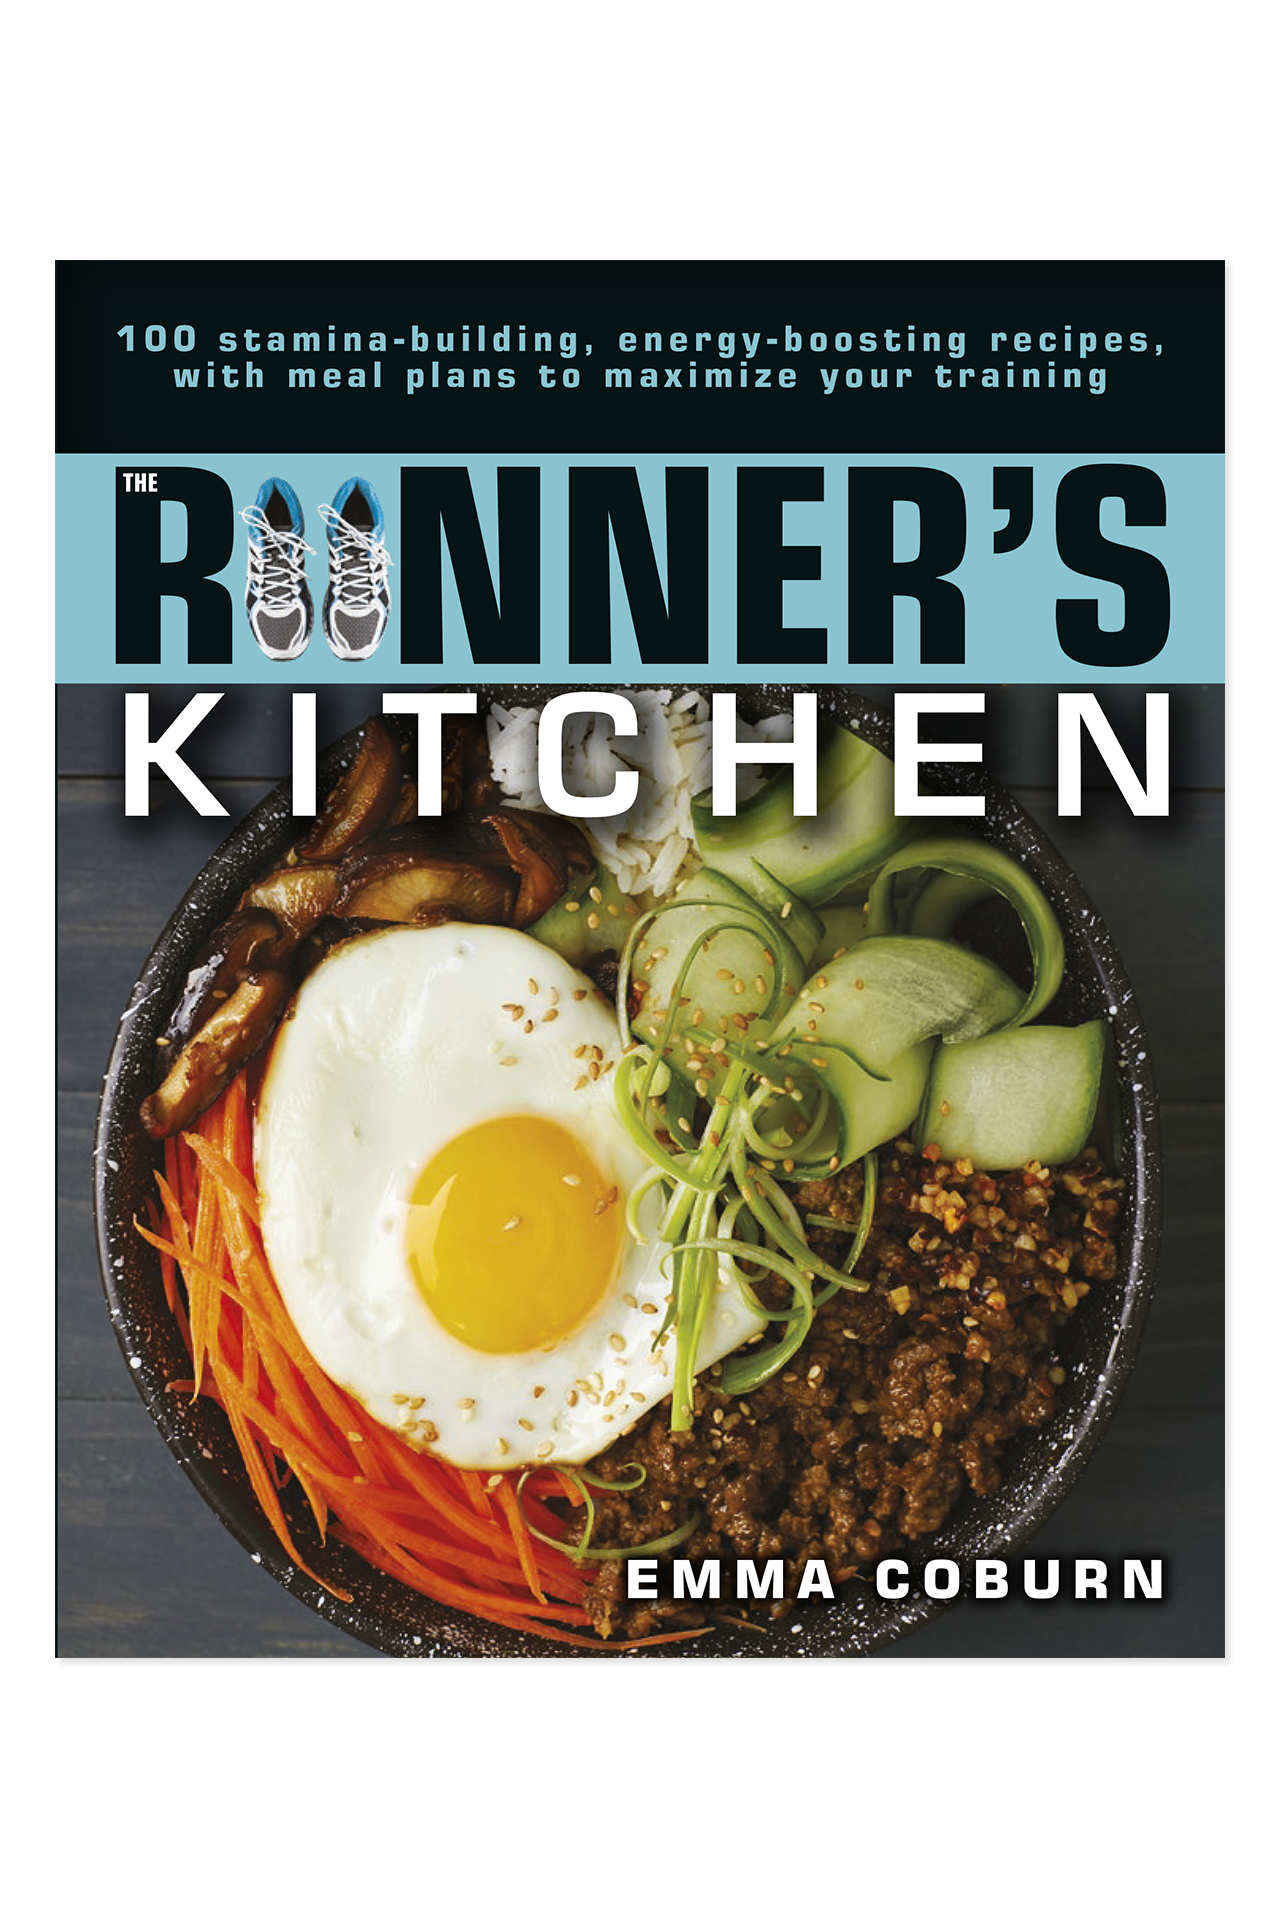 The Runner's Kitchen